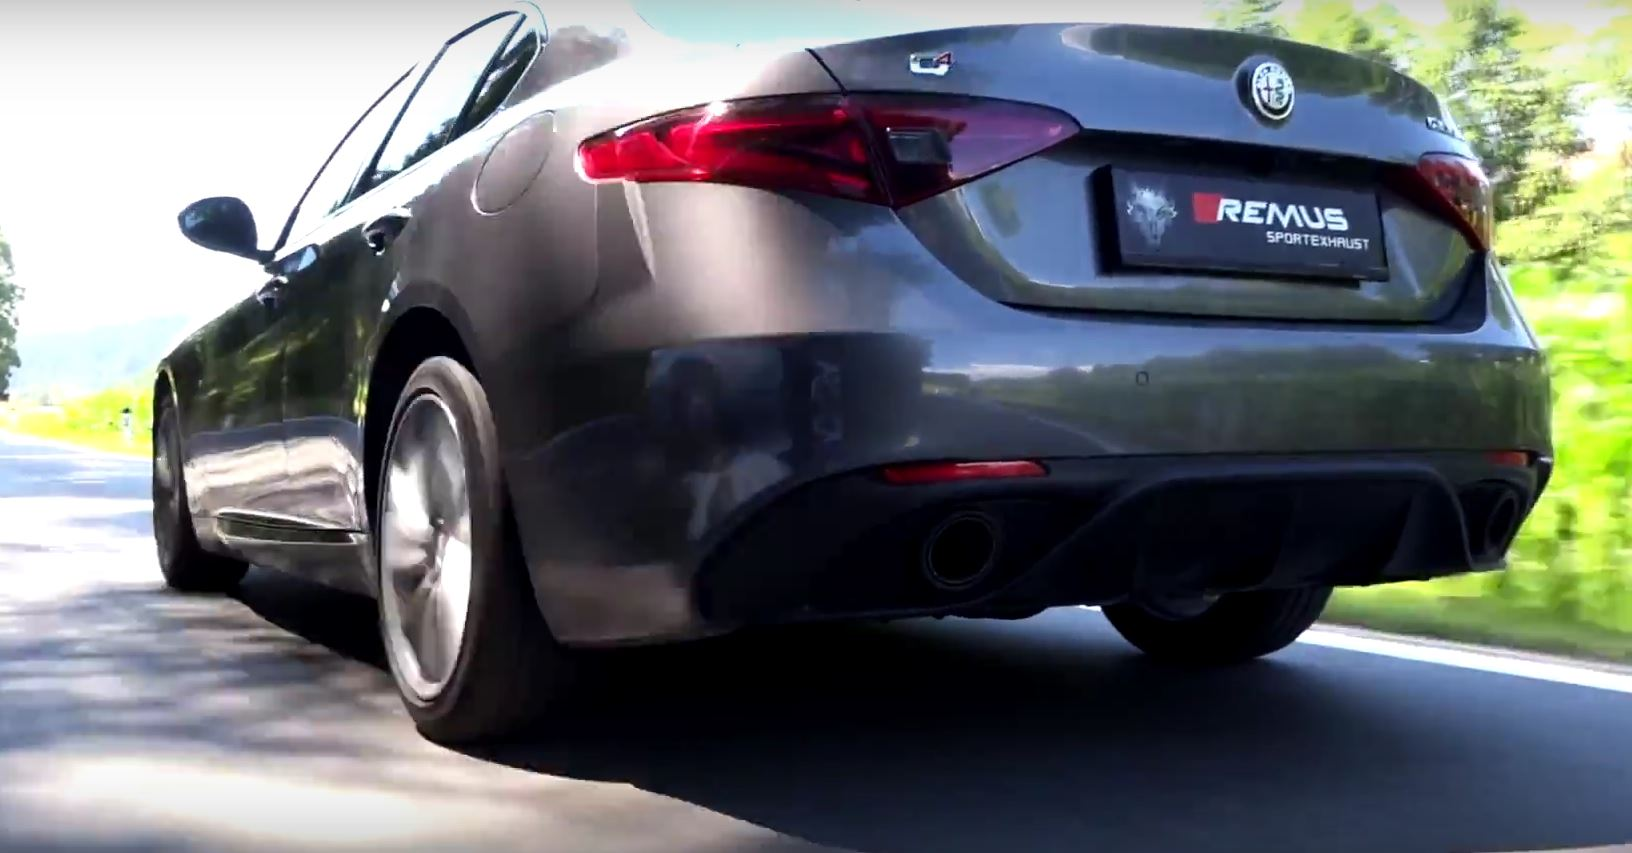 alfa romeo giulia veloce with remus exhaust sounds naughty